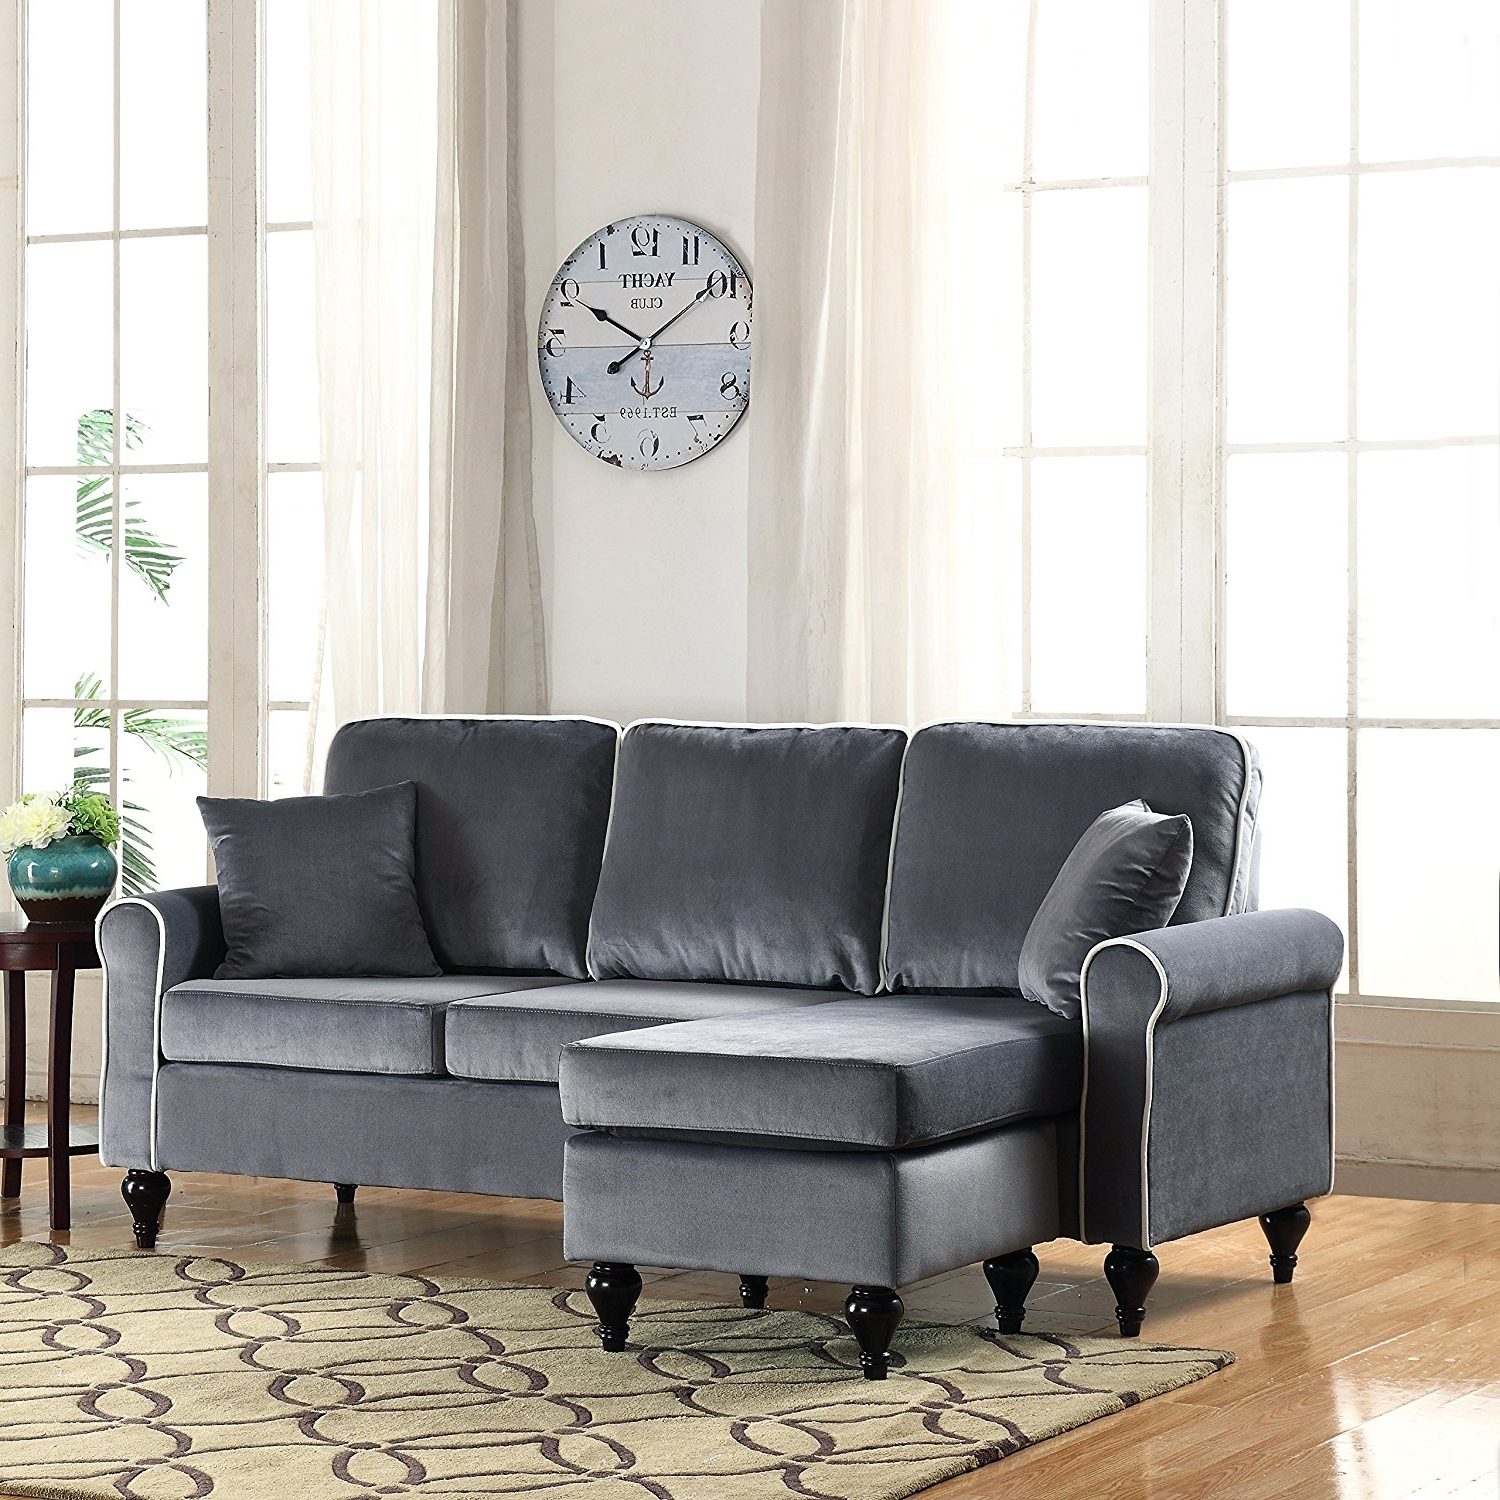 Best And Newest Amazon: Classic And Traditional Small Space Velvet Sectional Regarding Sofas With Reversible Chaise (View 8 of 15)